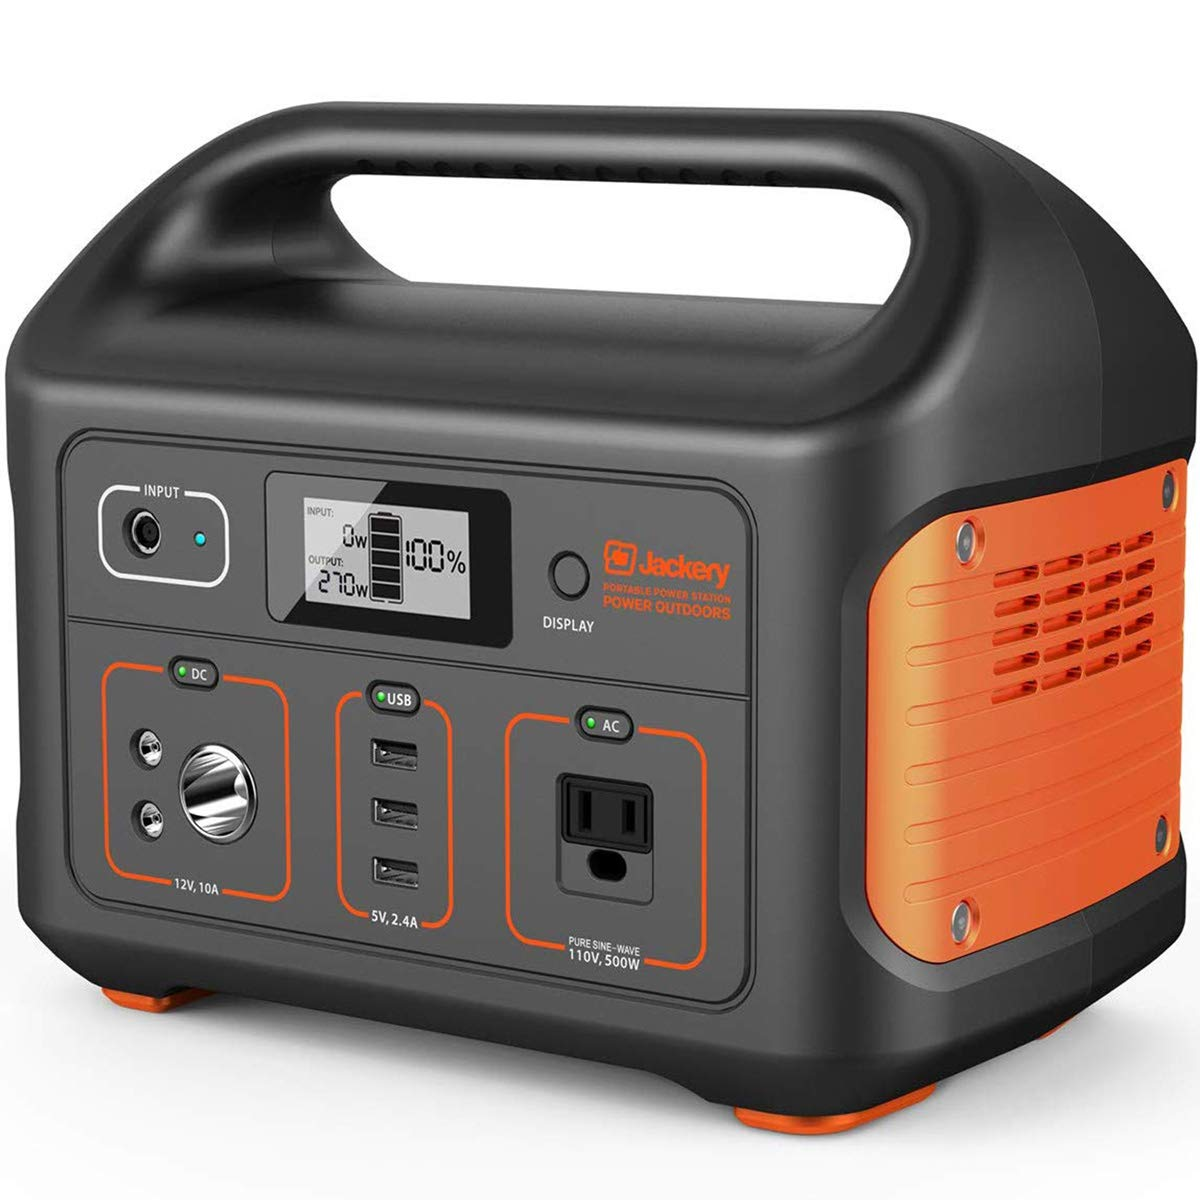 Jackery Portable Power Station Explorer 500, 518Wh Outdoor Solar Generator Mobile Lithium Battery Pack with 110V 500W AC Outlet Solar Panel Optional for Road Trip Camping, Outdoor Adventure